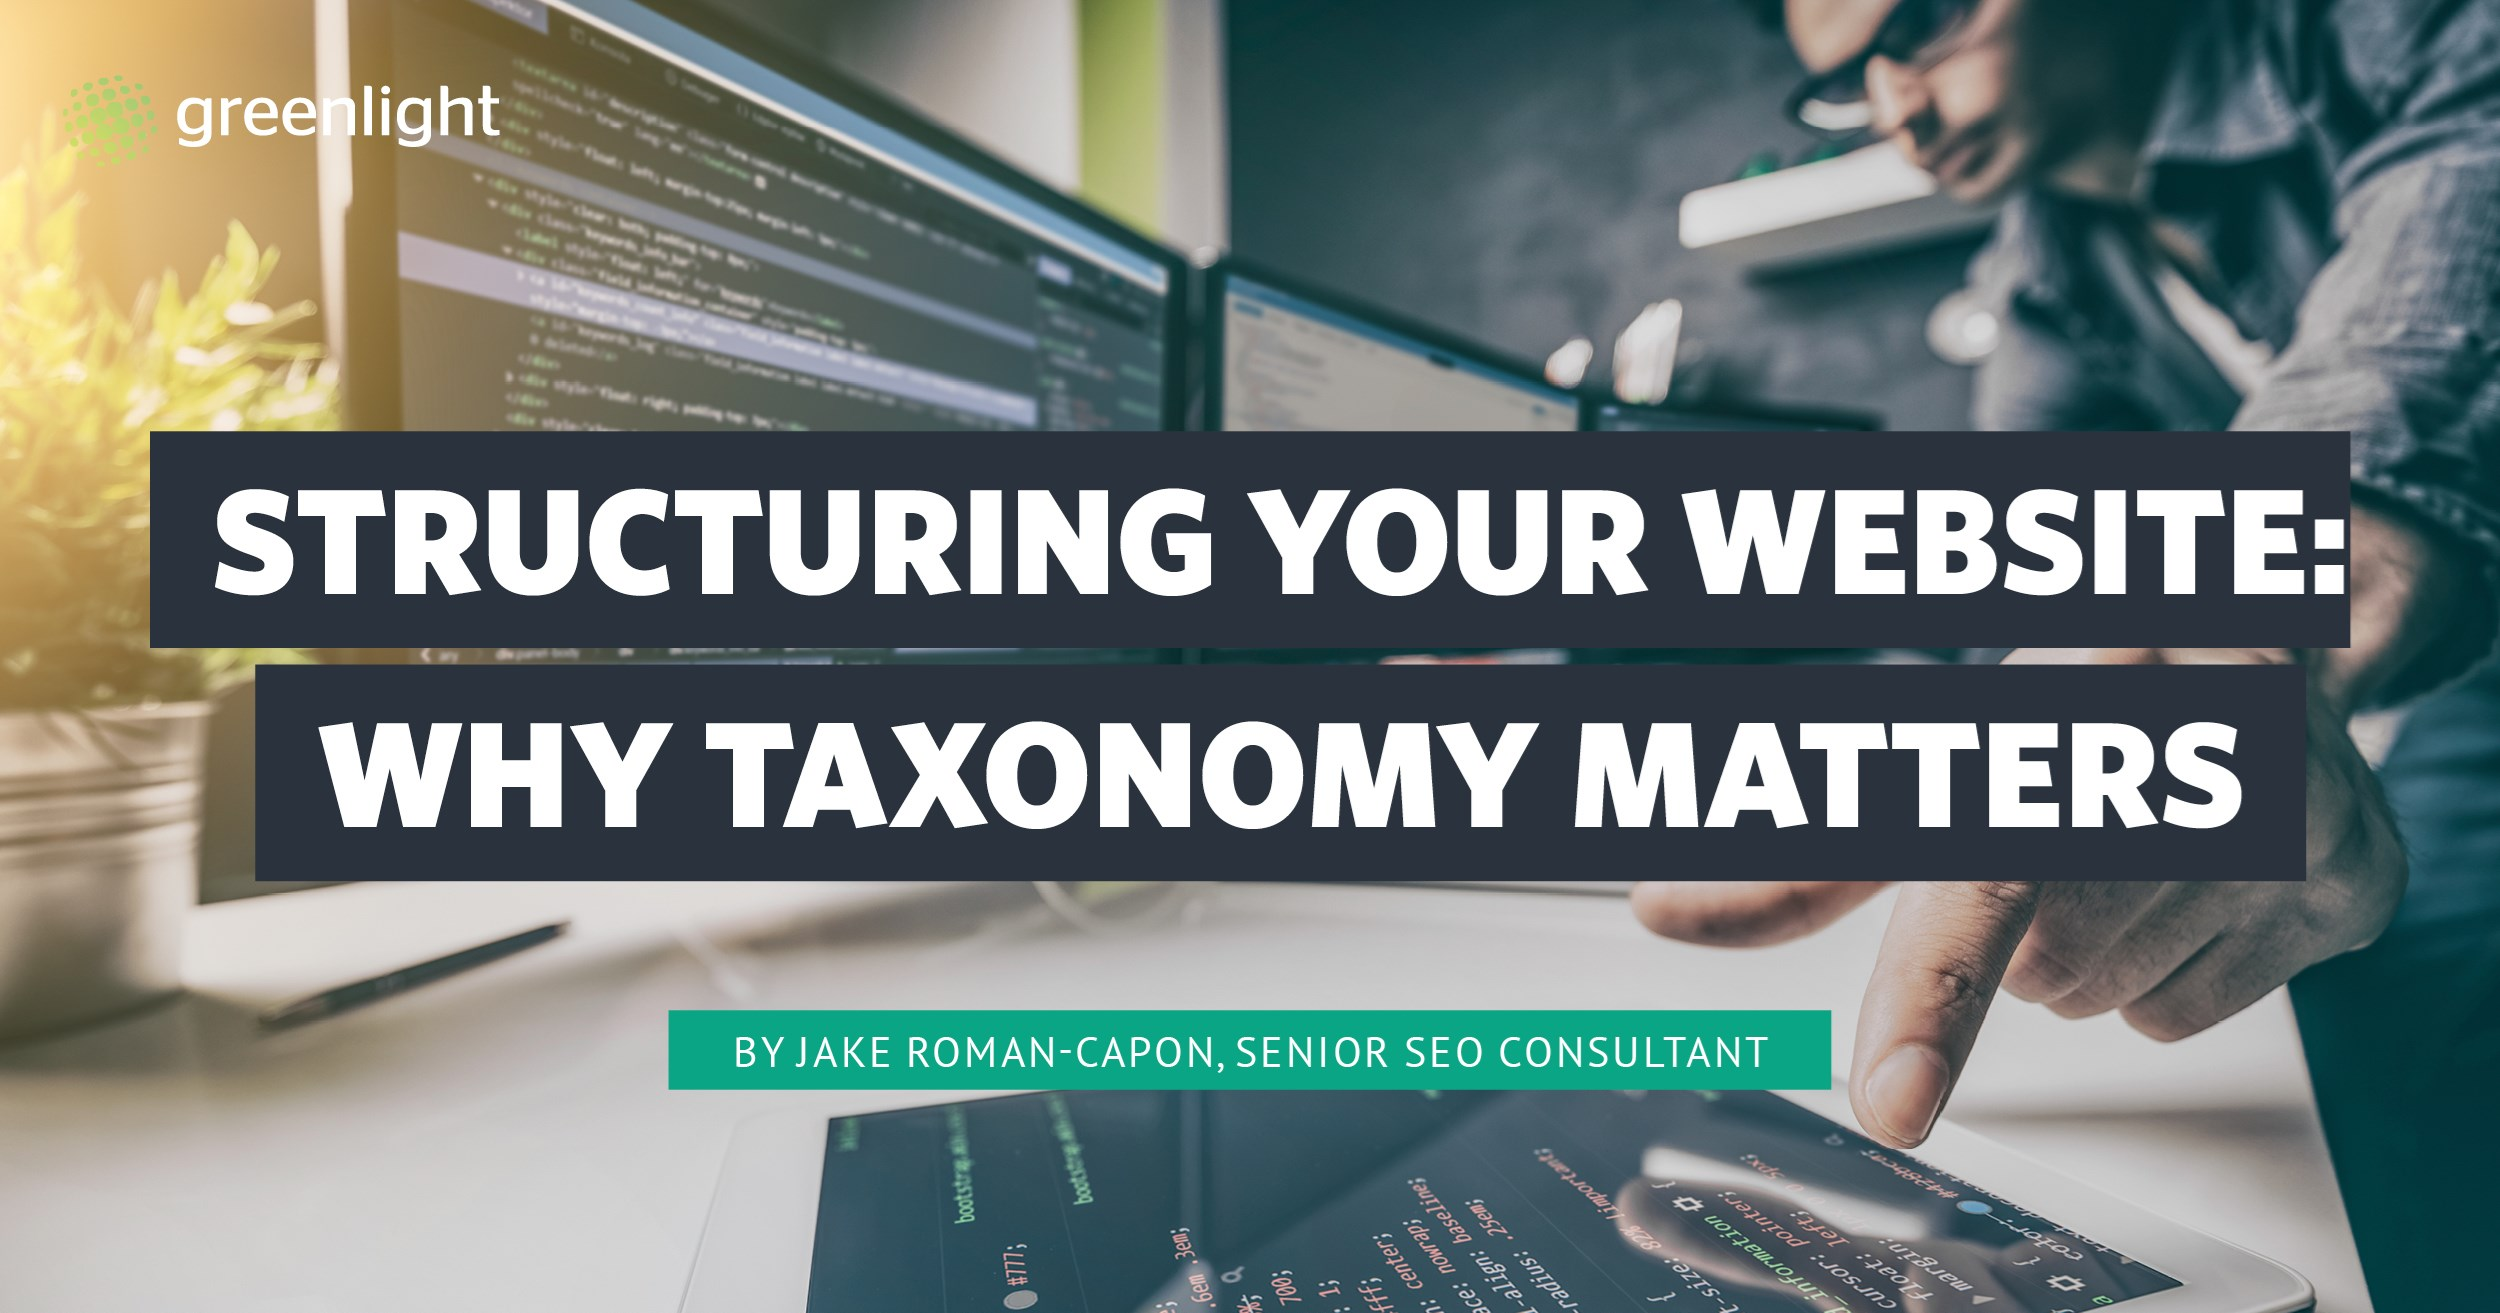 Structuring Your Website: Why Taxonomy Matters